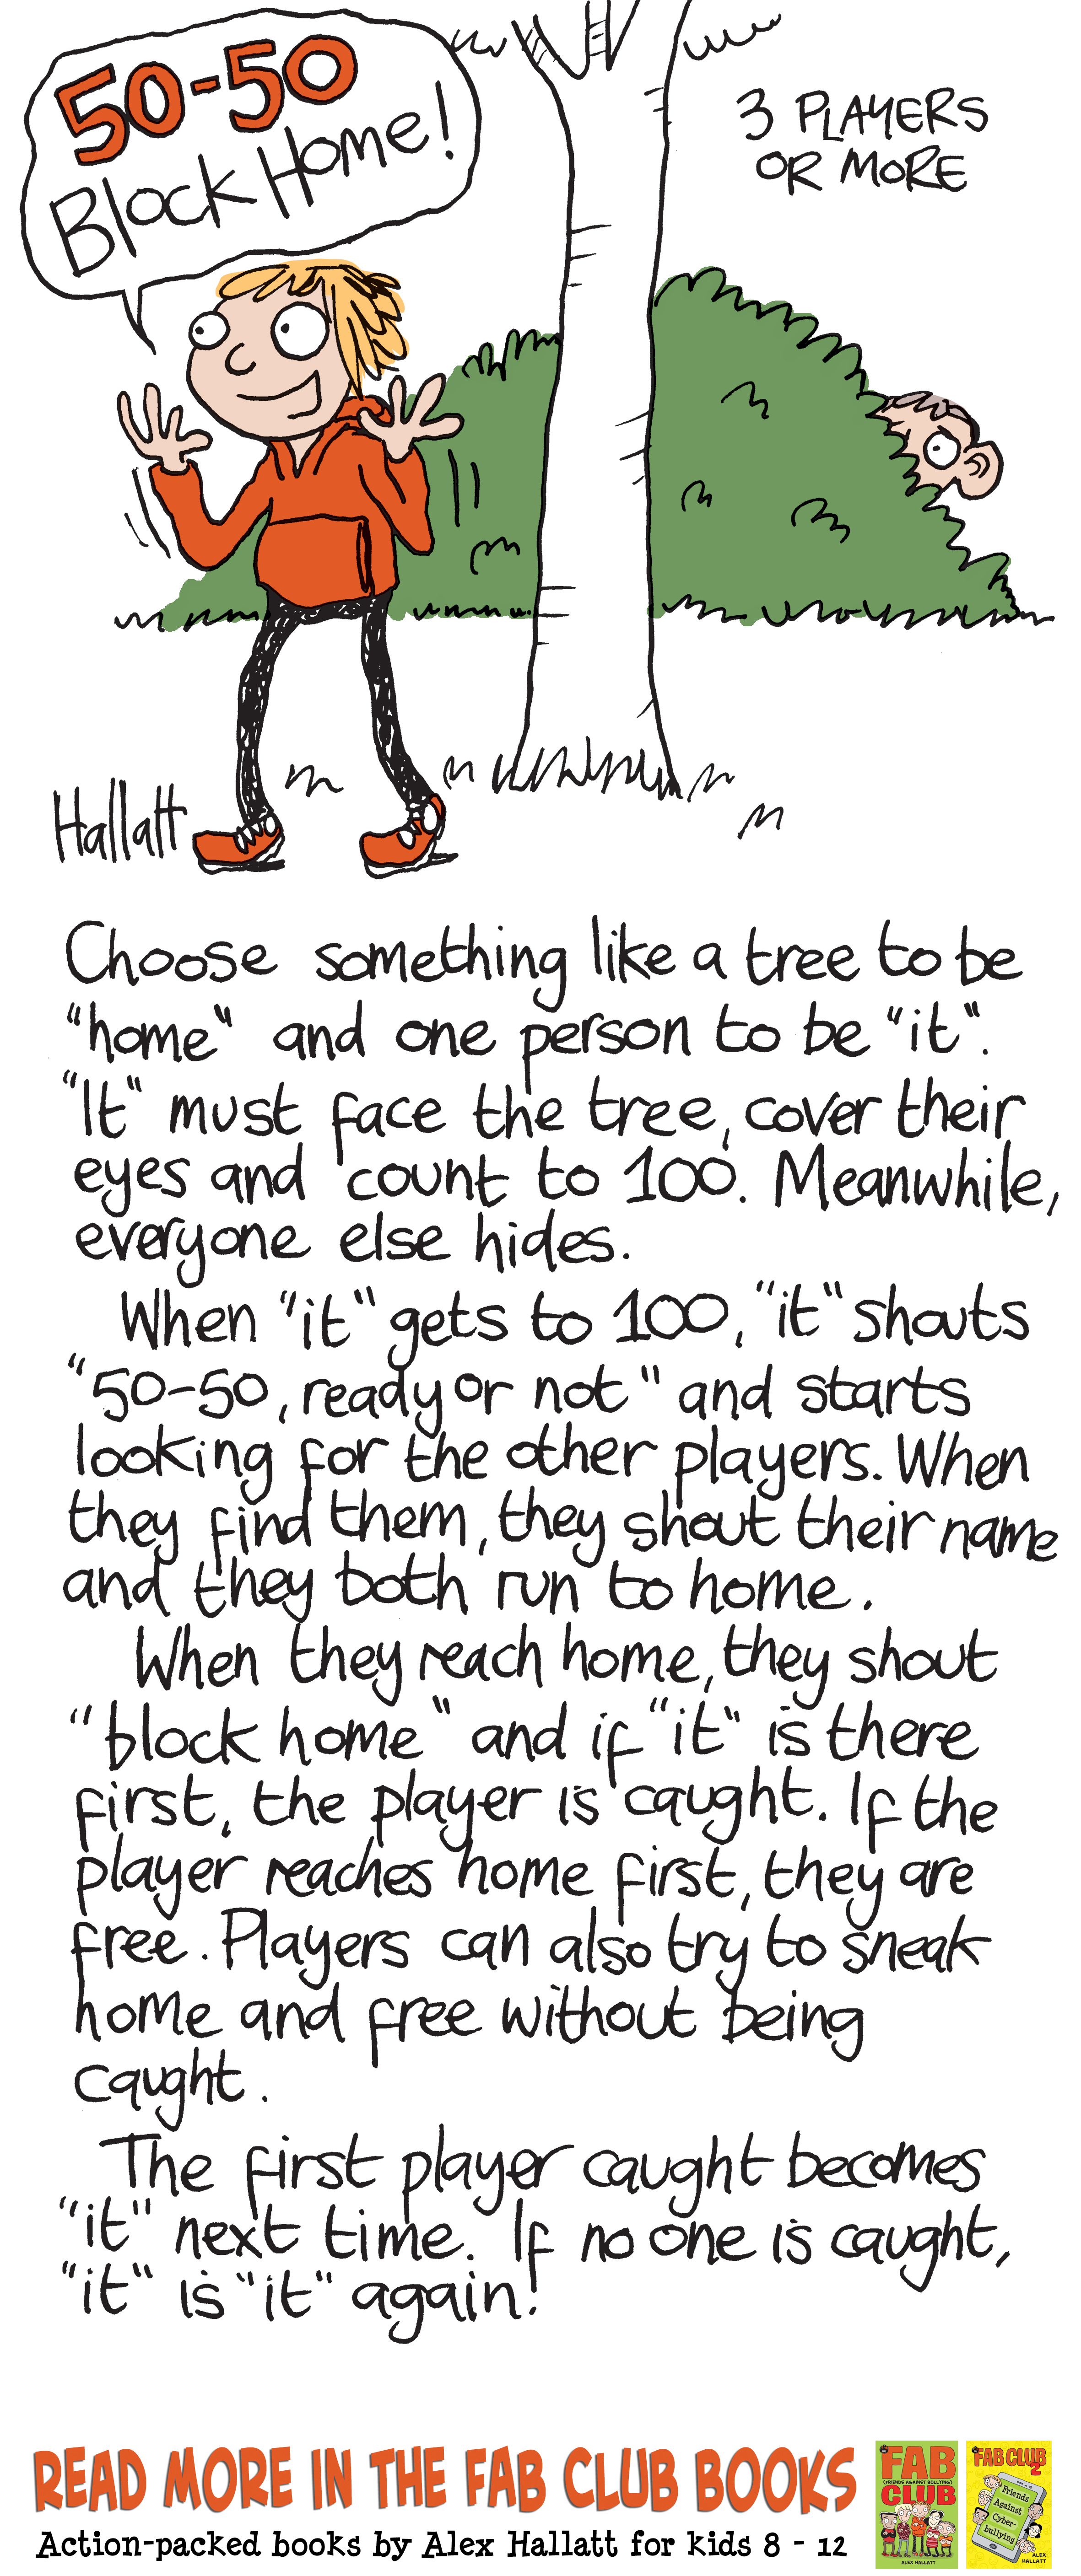 "50-50 Block home rules. 3 players or more.Choose something like a tree to be home and one person to be ""it"". ""It"" must face the tree cover their eyes and count to 100. Meanwhile, everyone else hides. When it gets to 100, it shouts ""50-50, ready or not"" and starts looking for the other players. When they find them, they shout their name and they both run to home. When they reach home they shout ""block home"" and if ""it"" is there first the player's caught. If the player reaches home first they are free. Players can also try to sneak home and free without being caught. The first player caught becomes ""it"" next time. If no one 's caught ""it"" is ""it"" again."